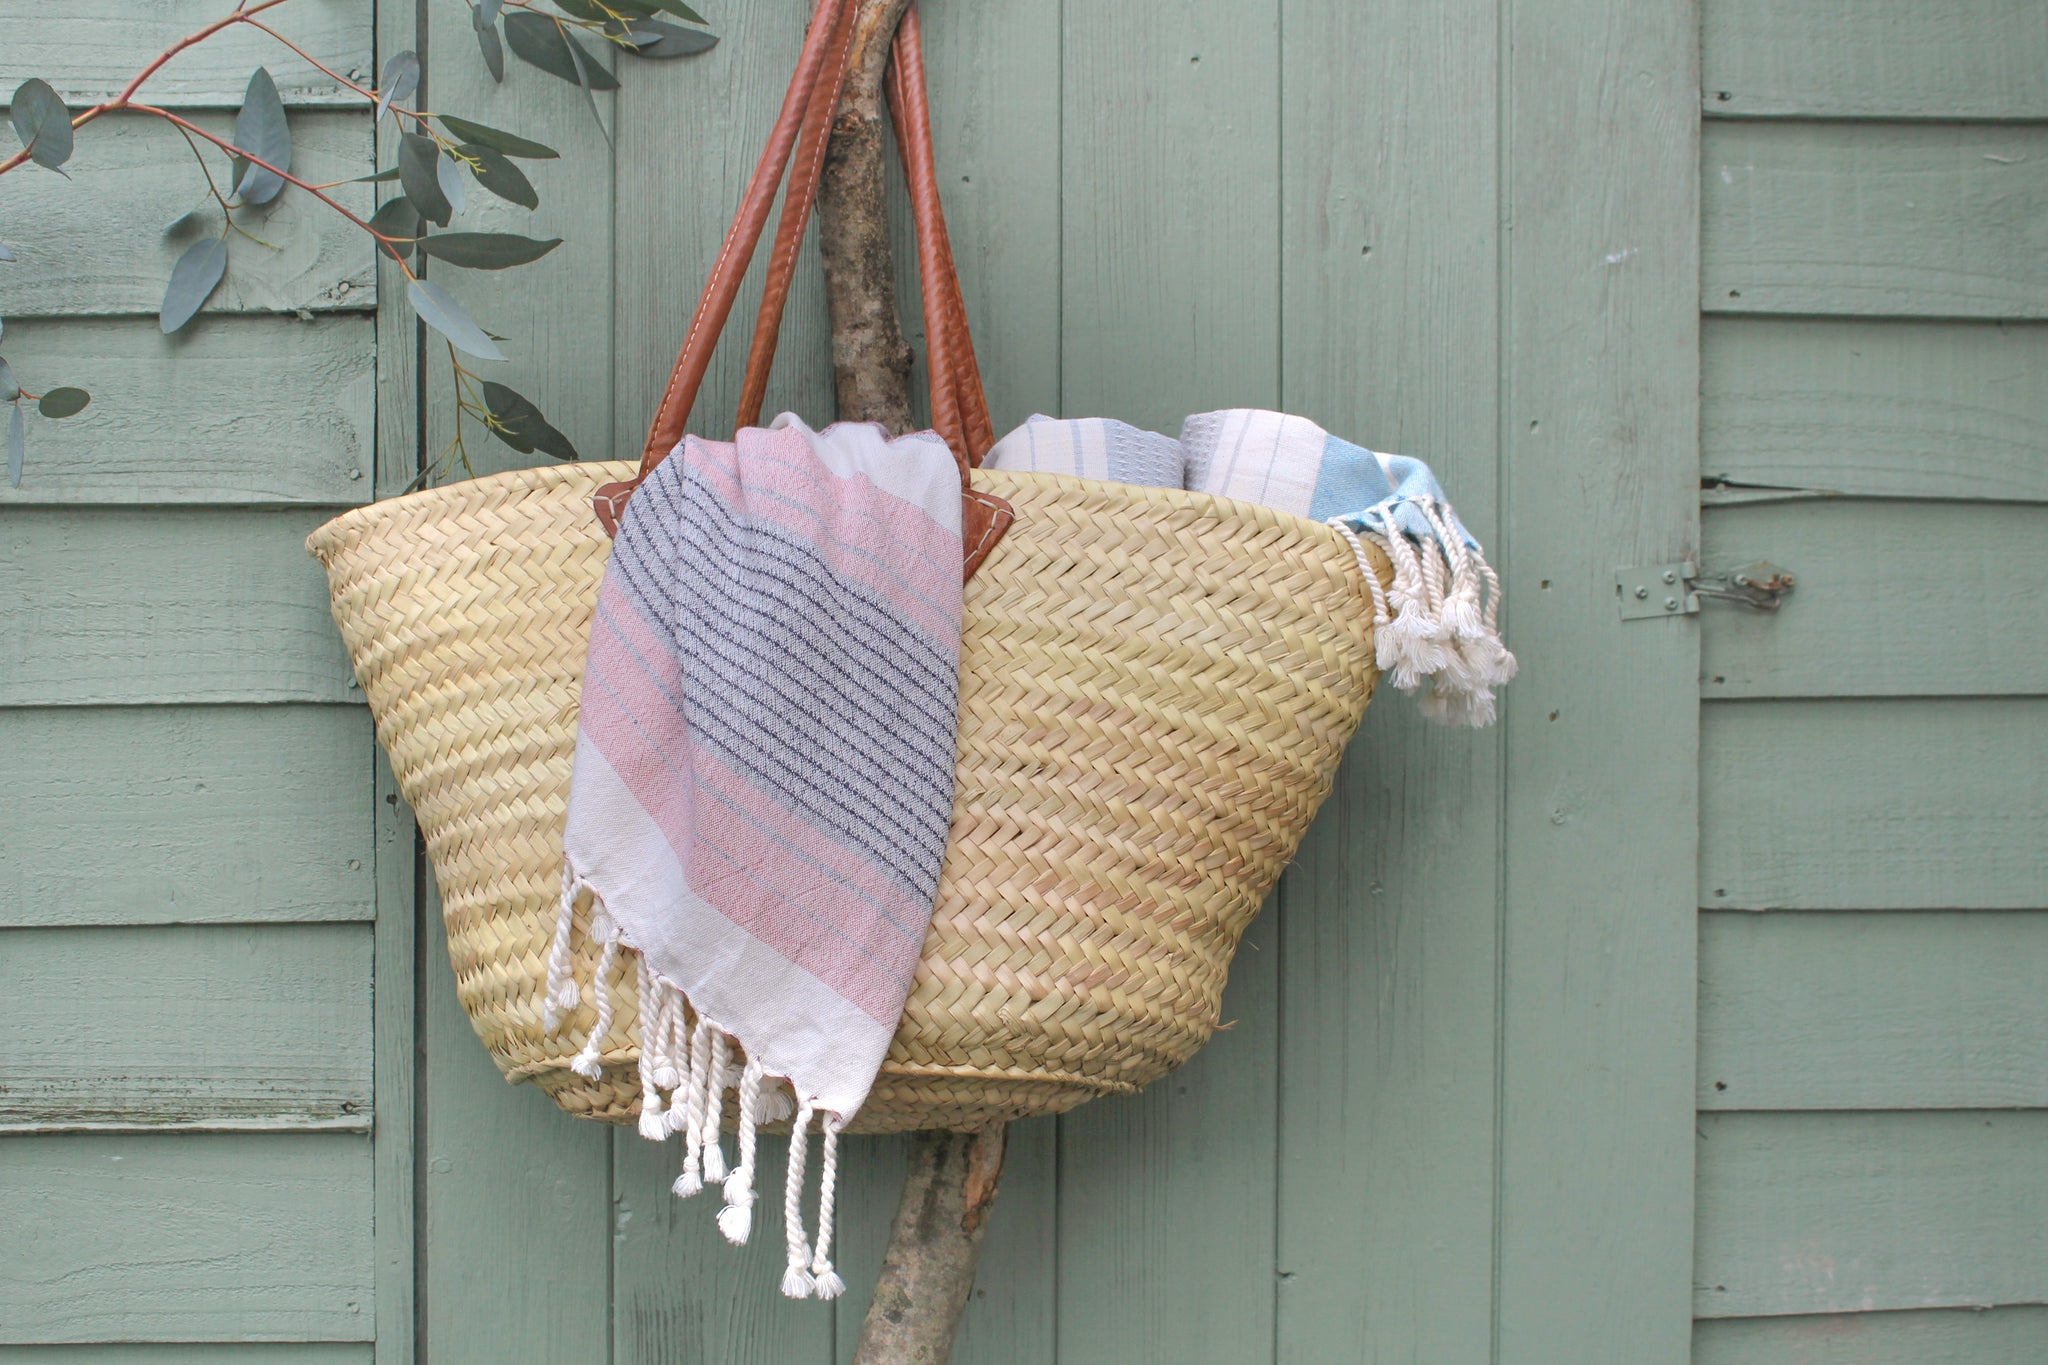 Hara organic cotton lightweight beach towel by Arc lore, packed in a woven straw bag hanging in front of a beach hut